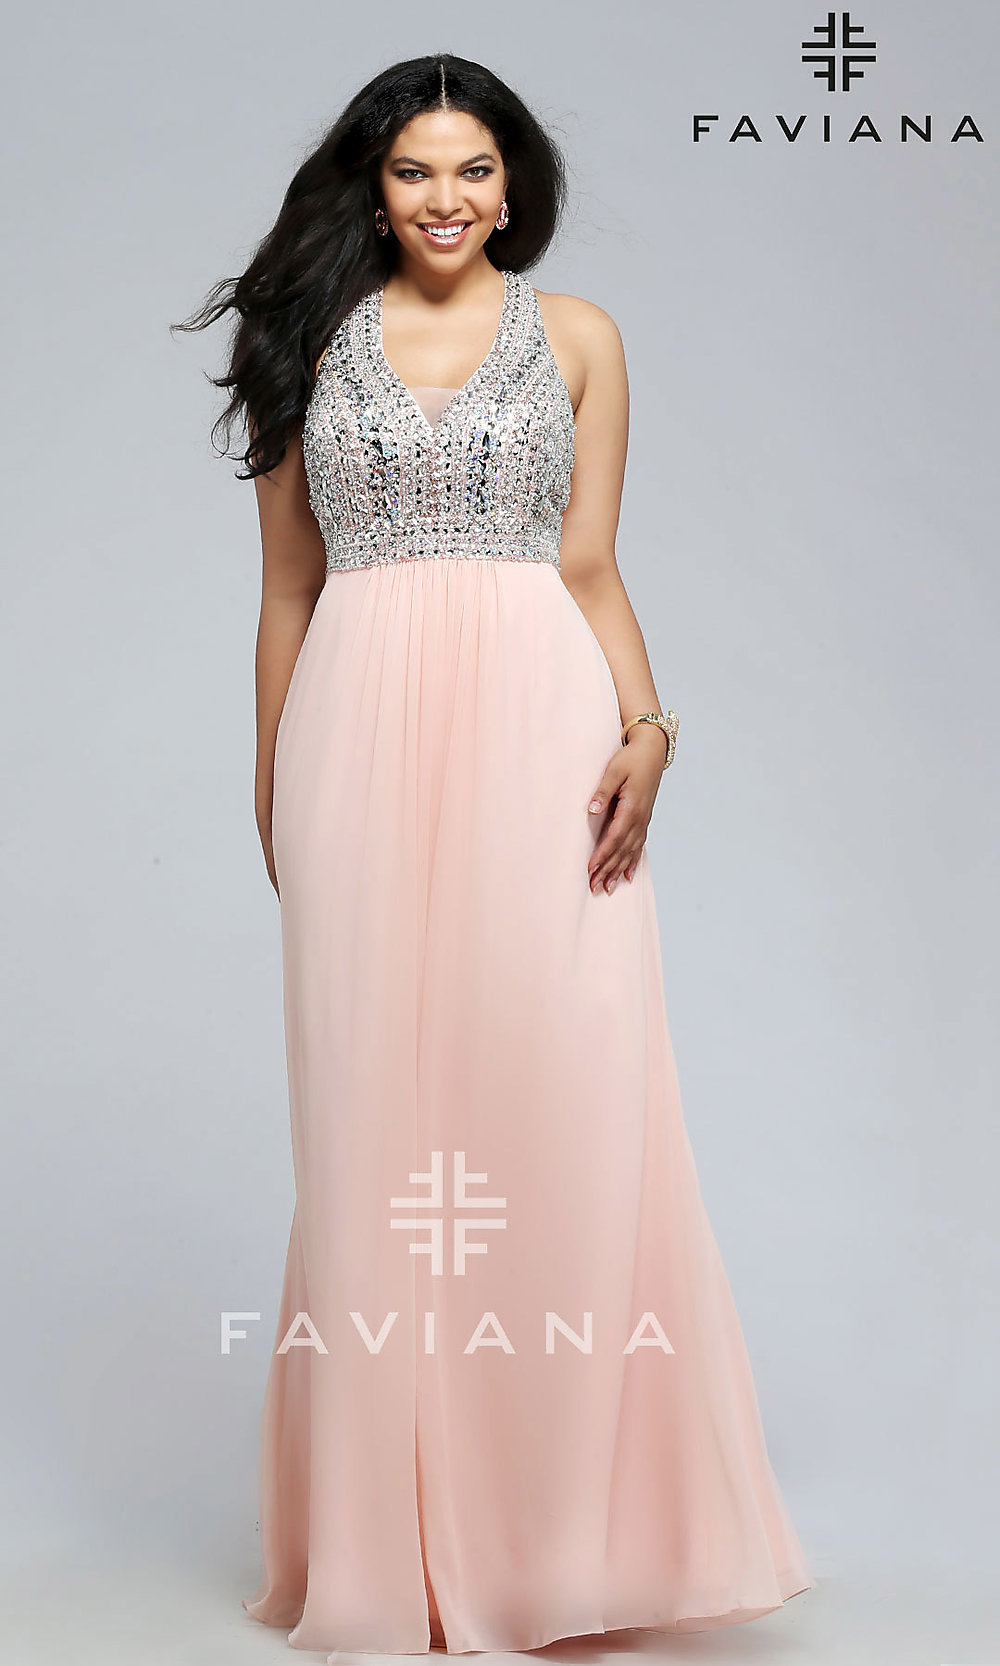 Celebrity Prom Dresses, Sexy Evening Gowns - PromGirl: FA-9388s